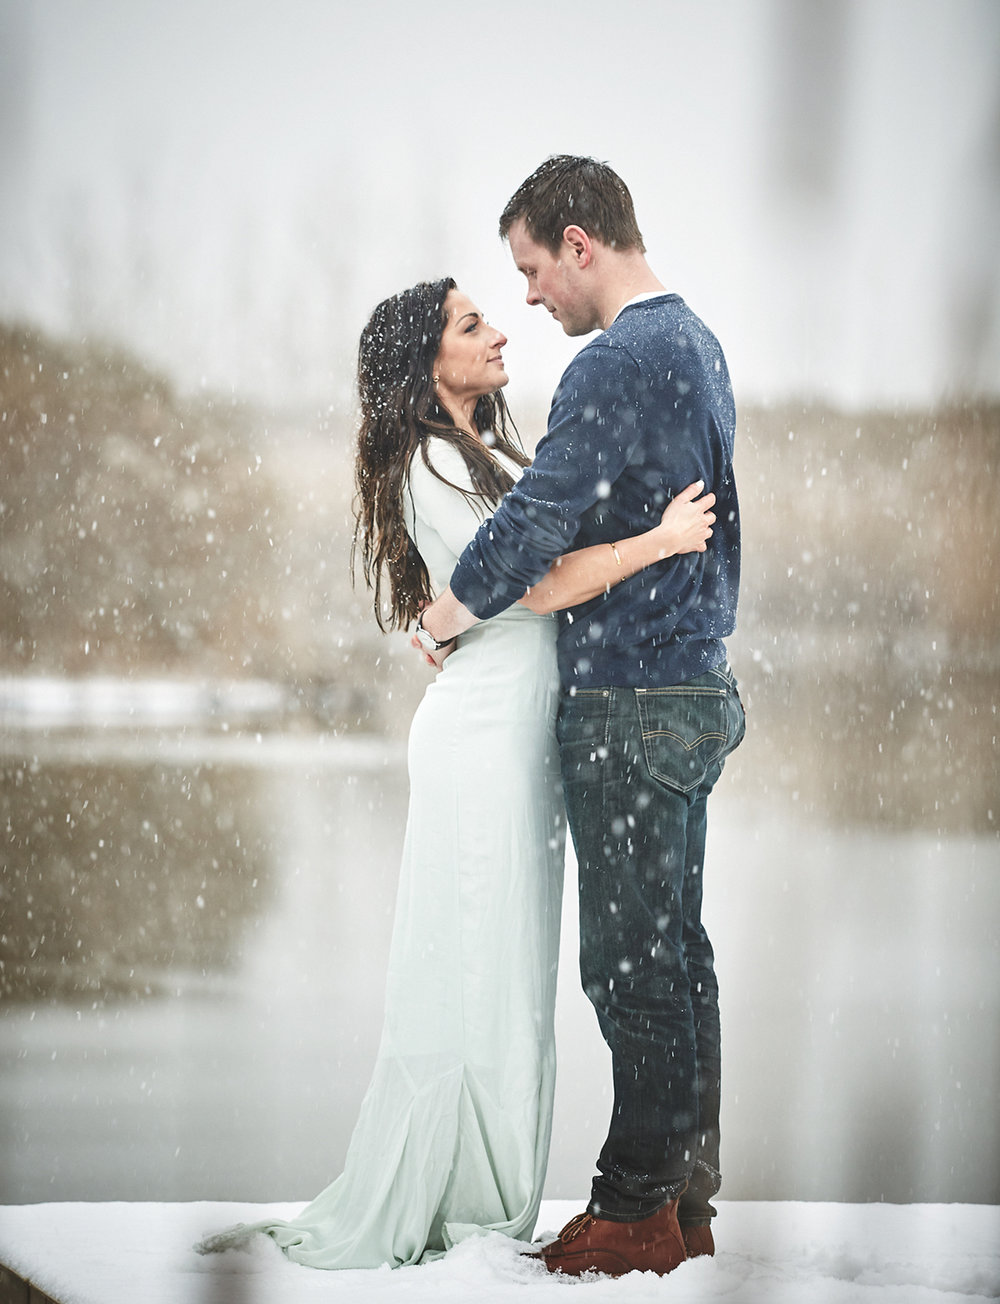 170114_LibertyStateParkEngagement_WinterEngagementPhotography_By_BriJohnsonWeddings0030.jpg